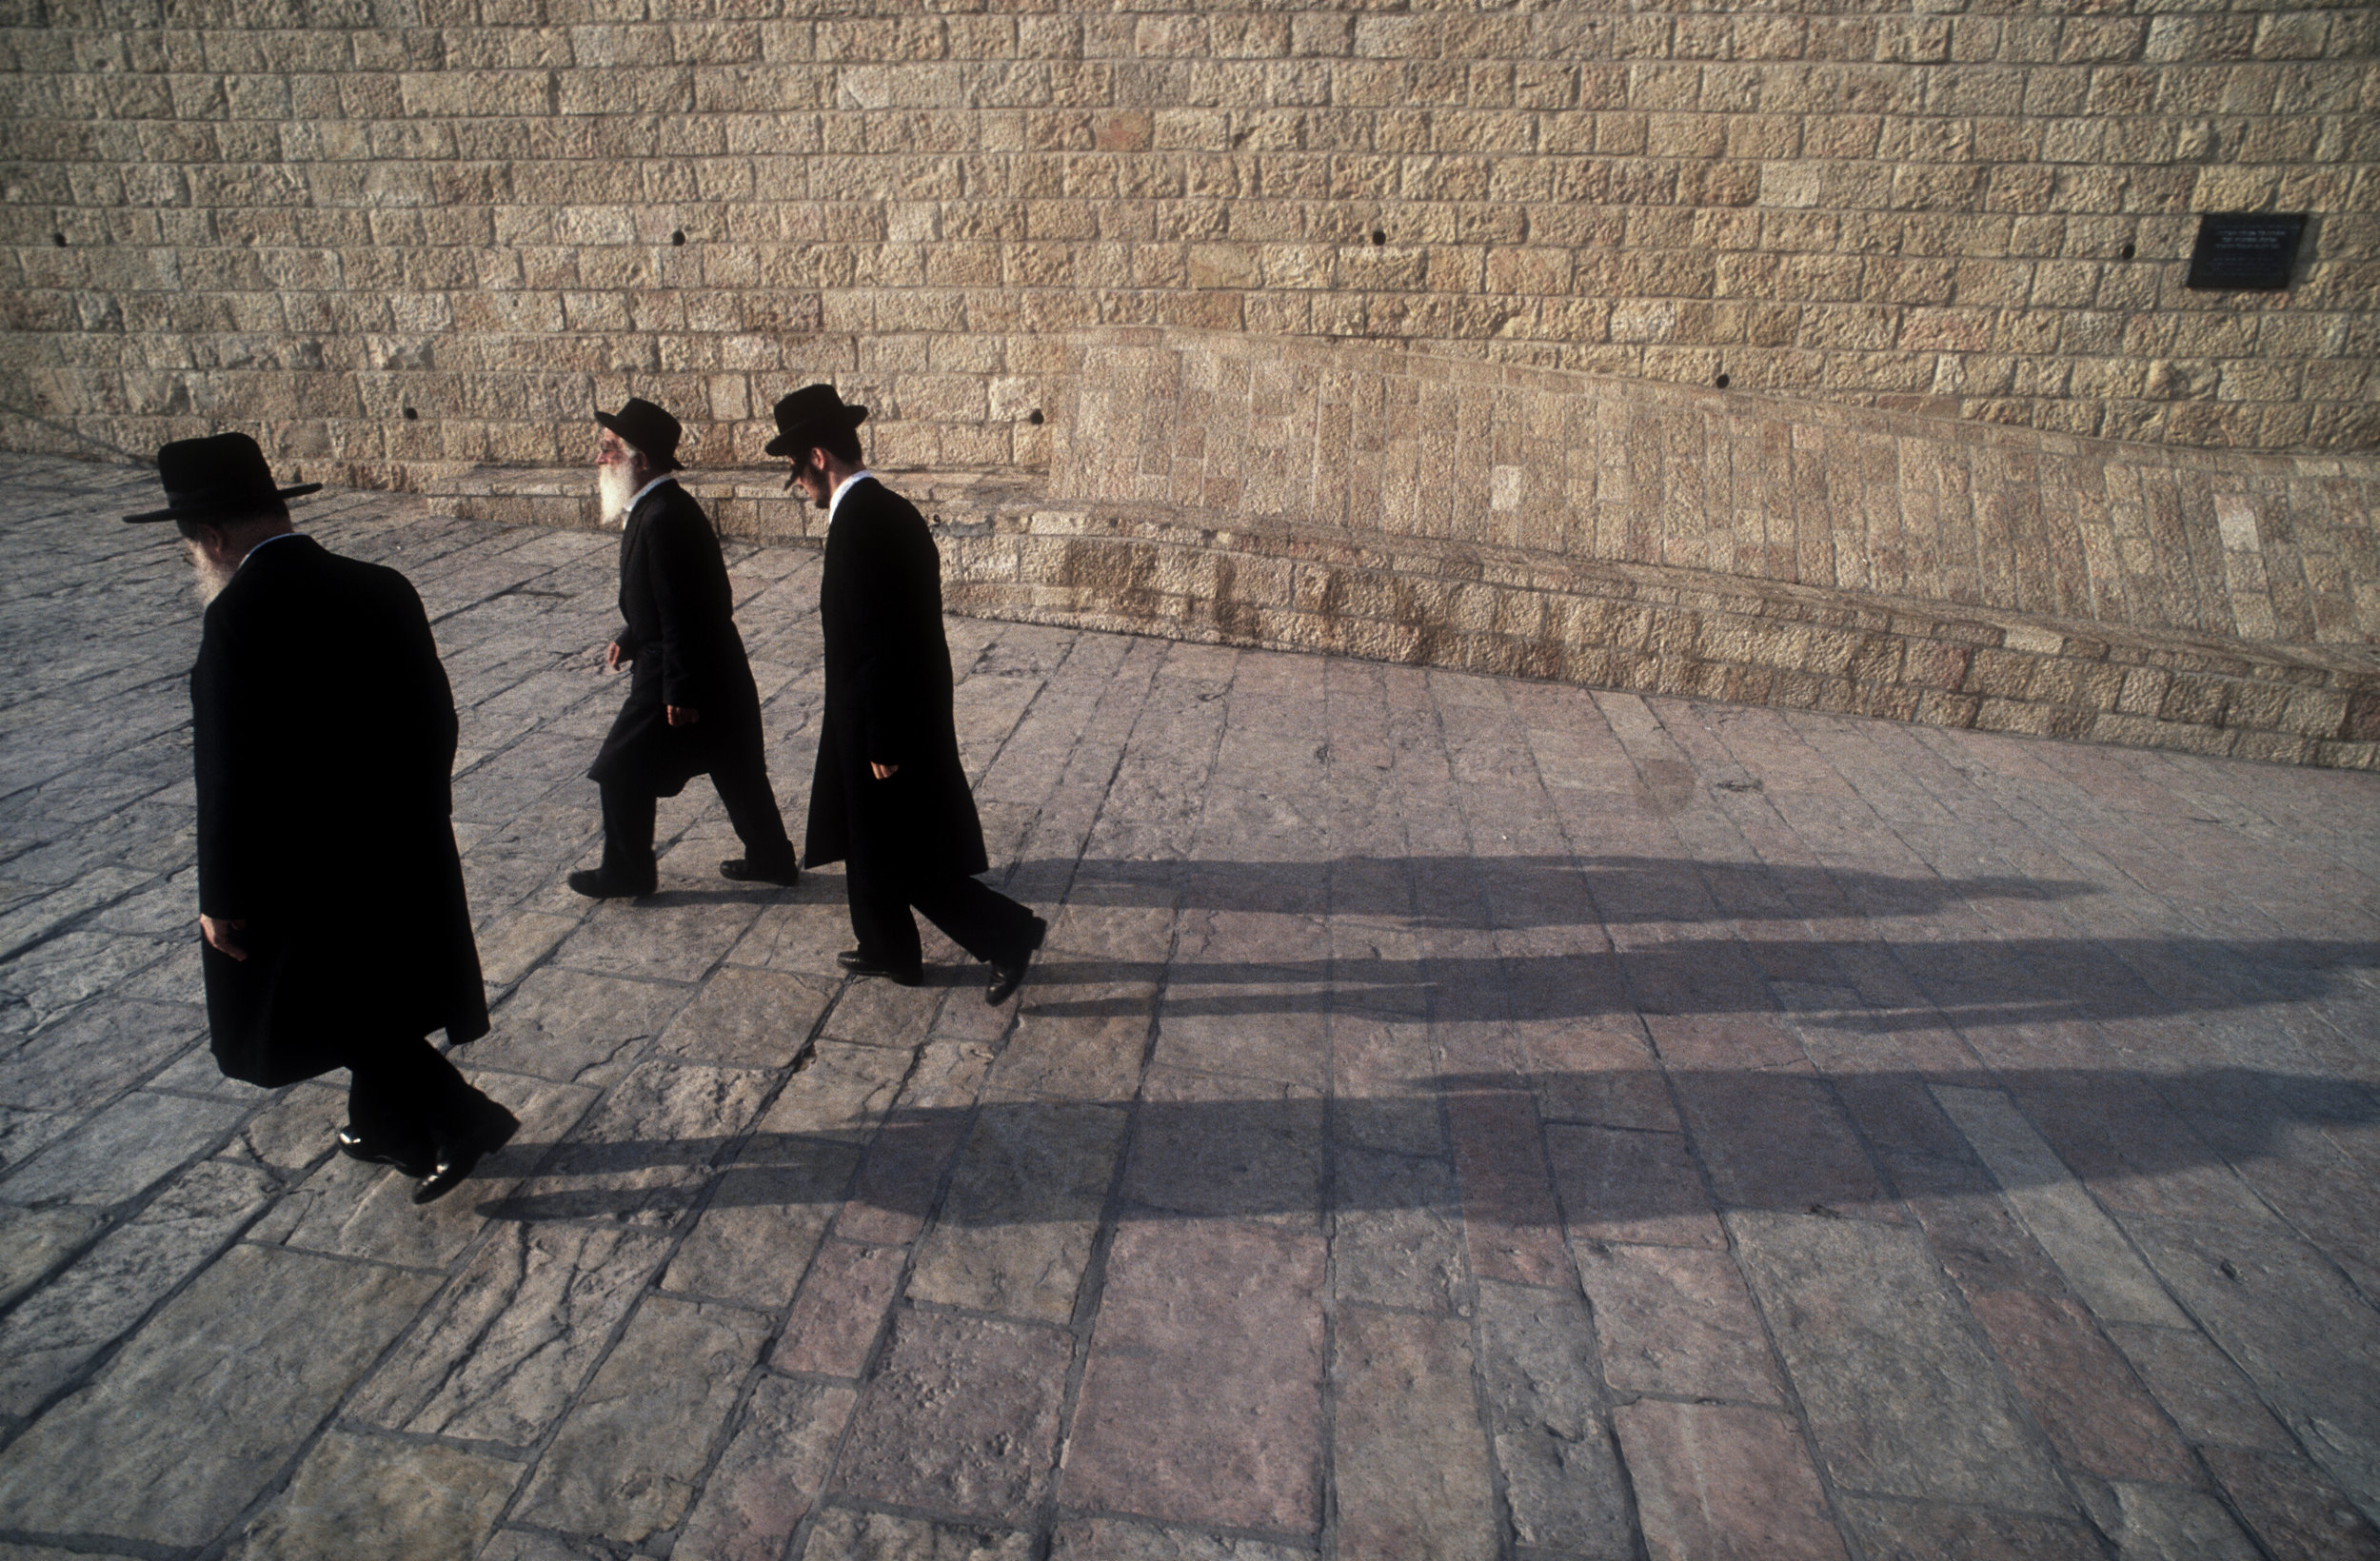 The much contested Western Wall in Jerusalem, Israel. Sometimes known as The Wailing Wall and also known as Kotel. It is remaining segment of a much larger ancient wall erected by Herod The Great that was built as part of an expansion program to encase Temple Mount.